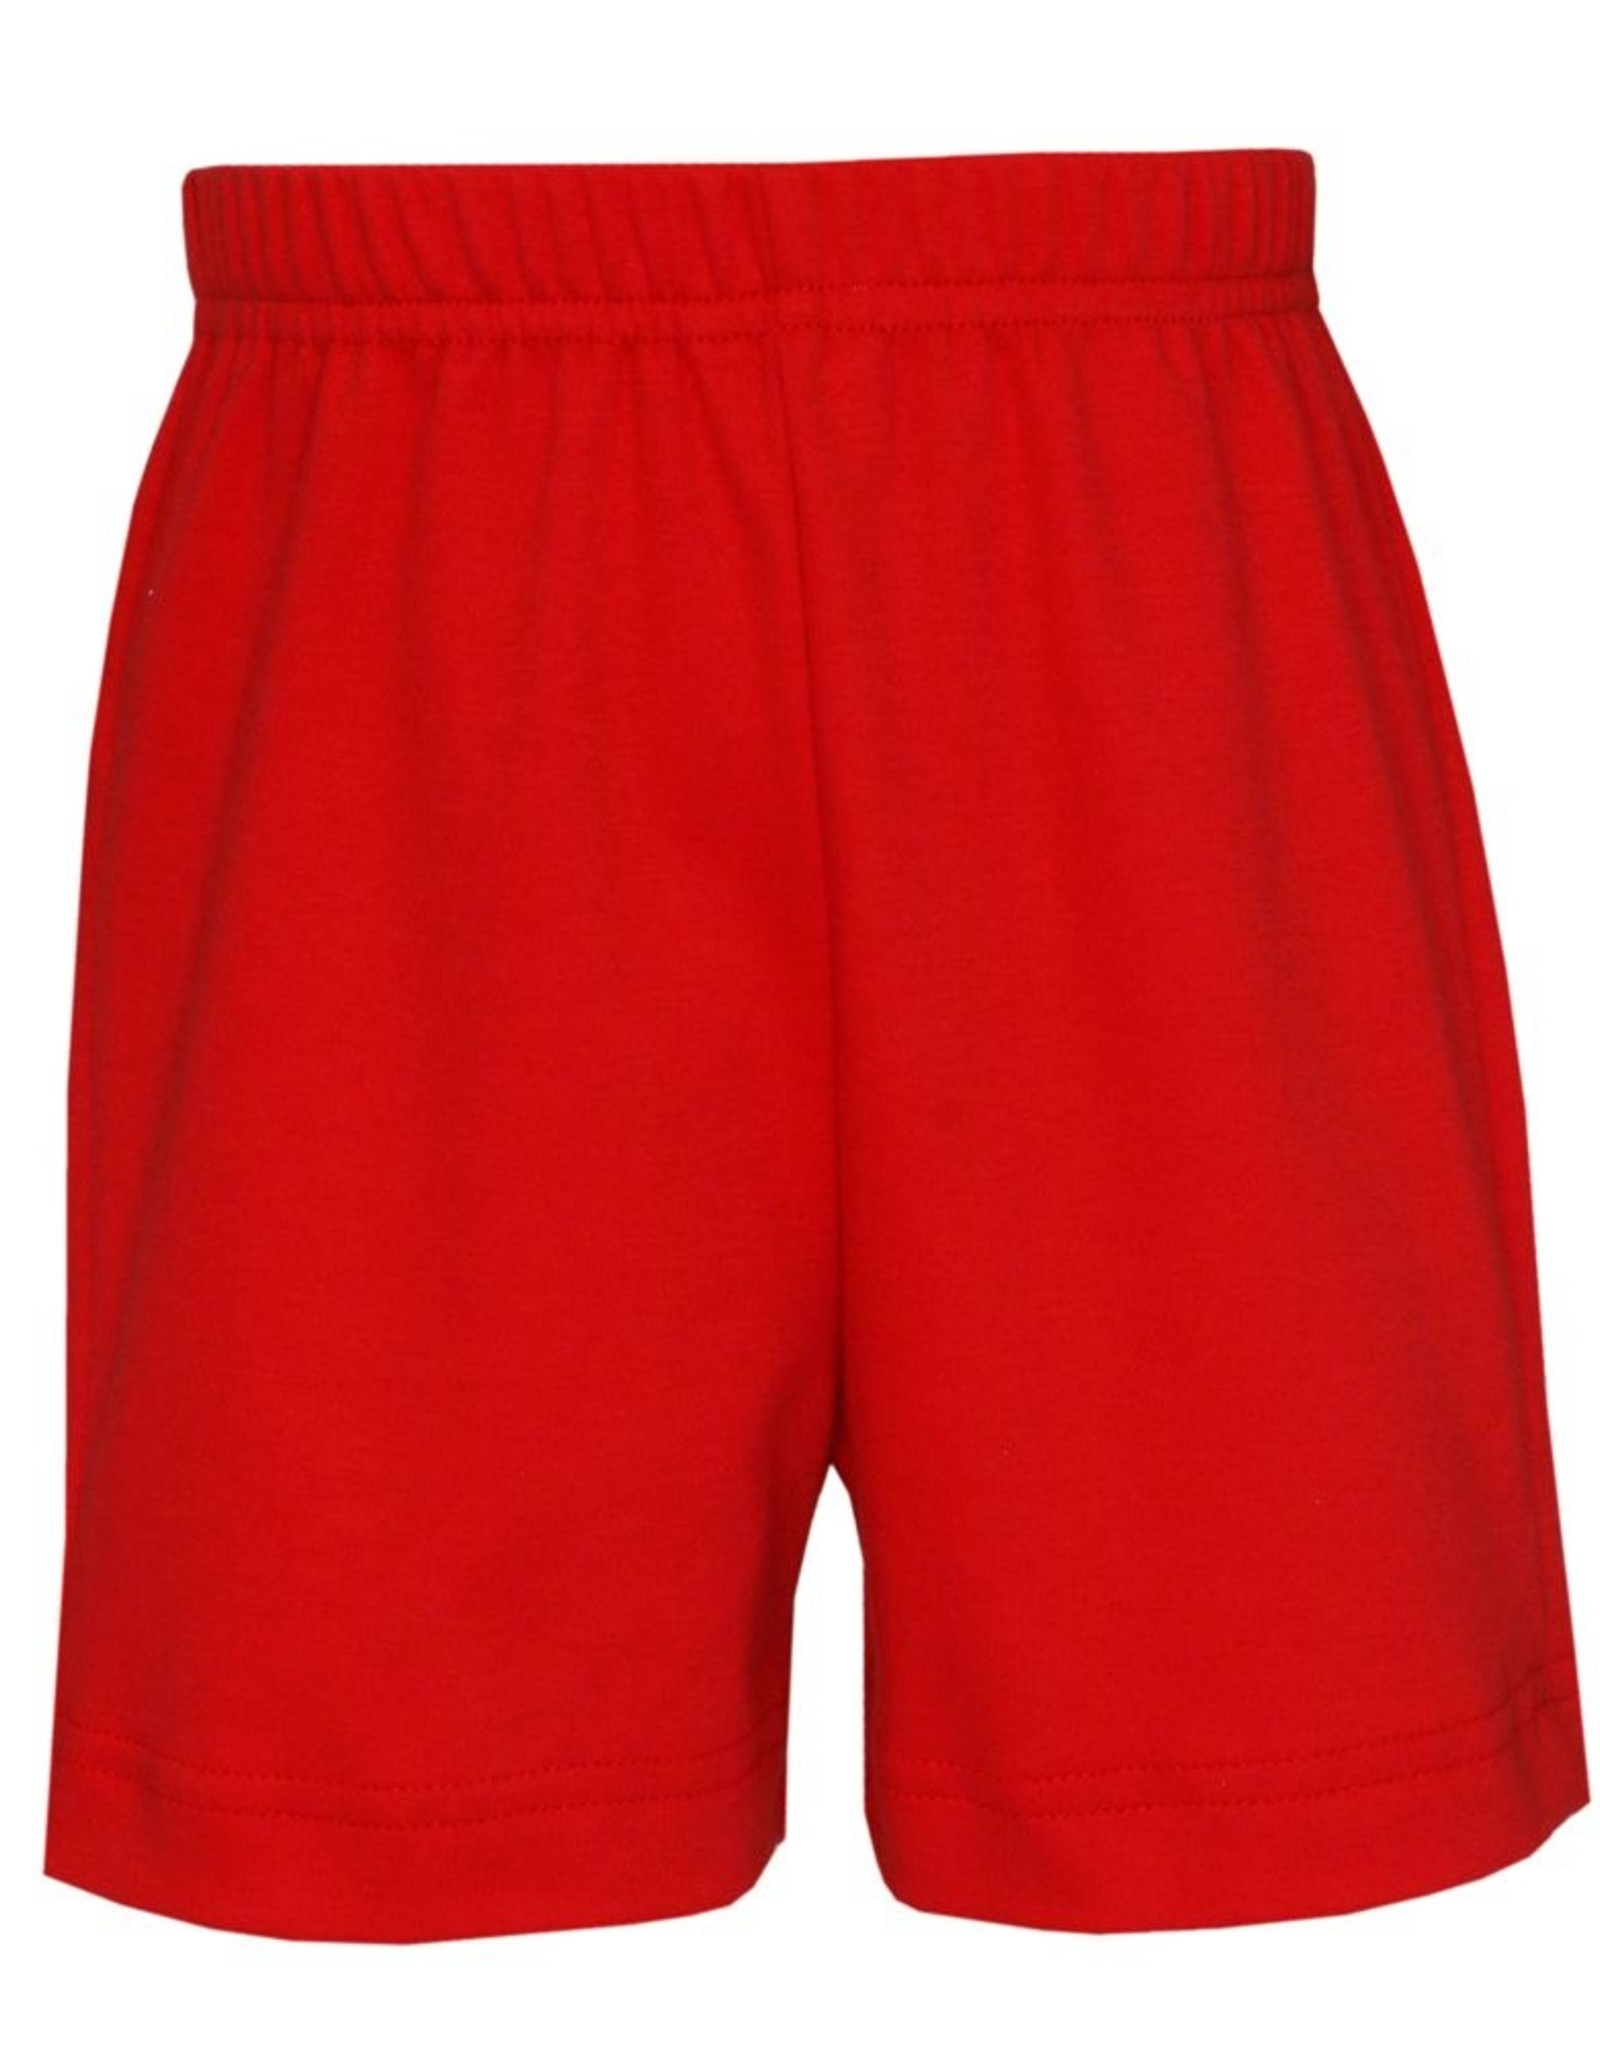 Claire and Charlie Periwinkle Highway Short Set With Red Shorts